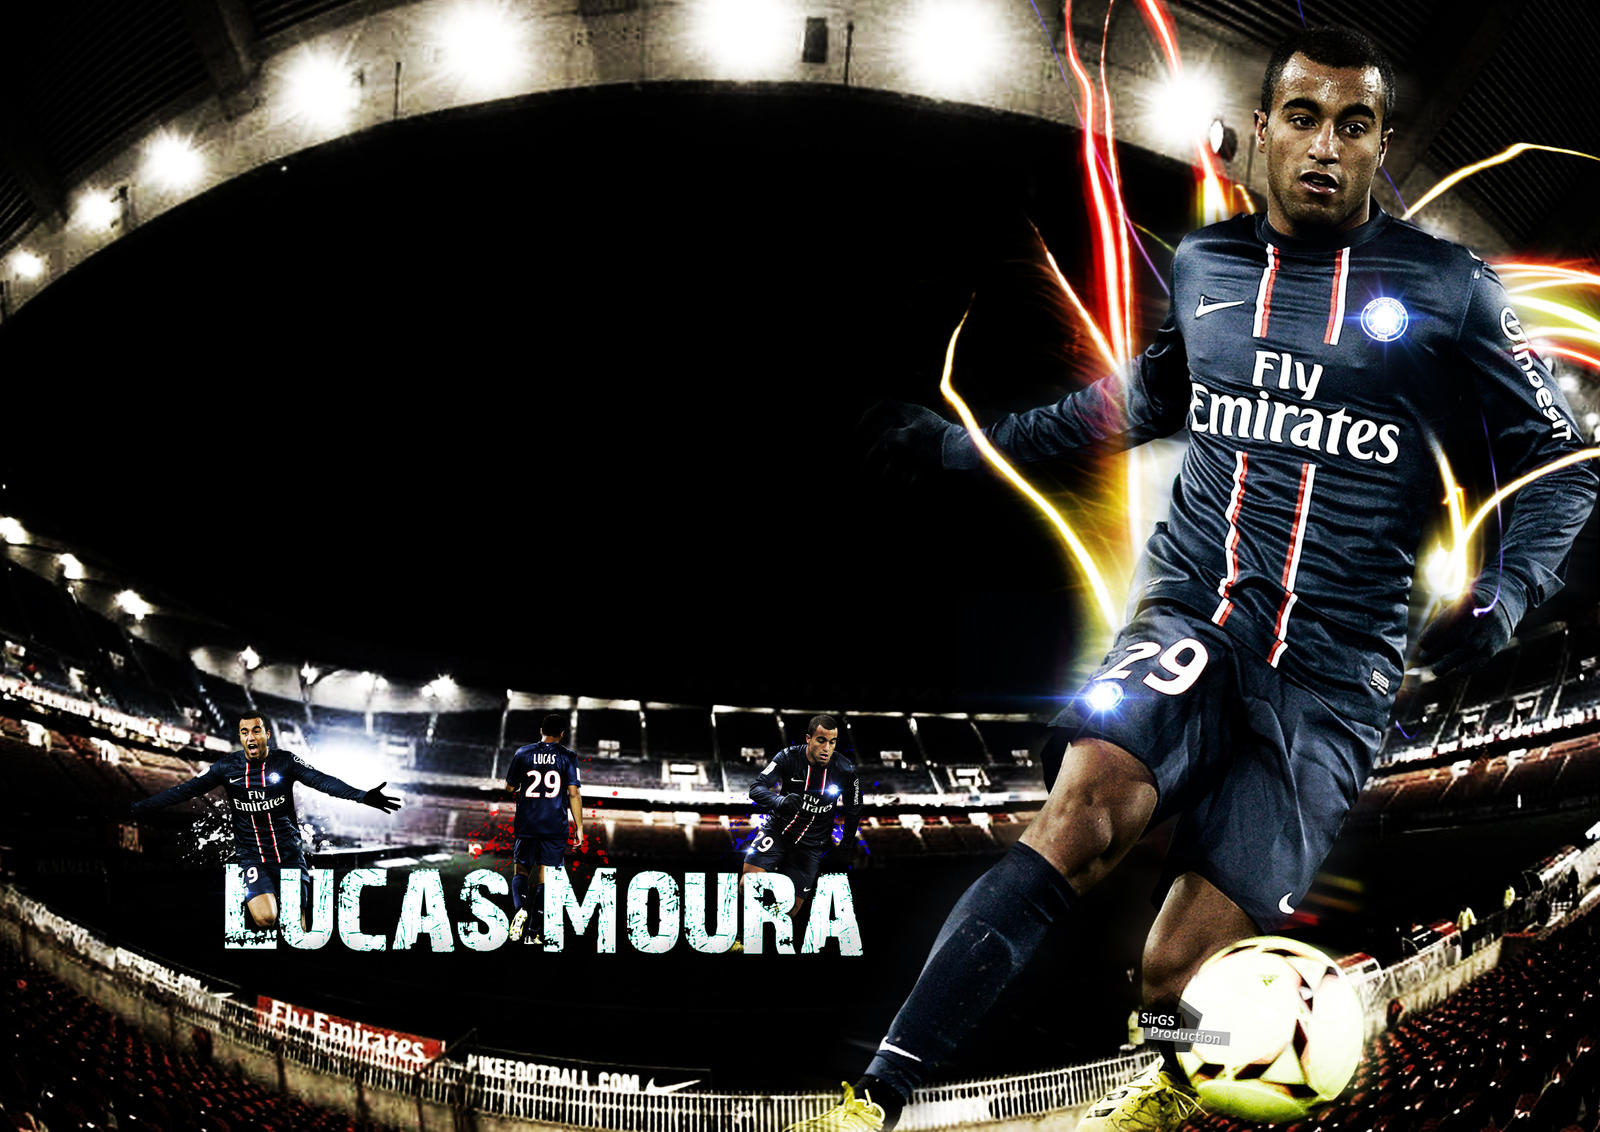 Lucas Moura by SirGS on DeviantArt